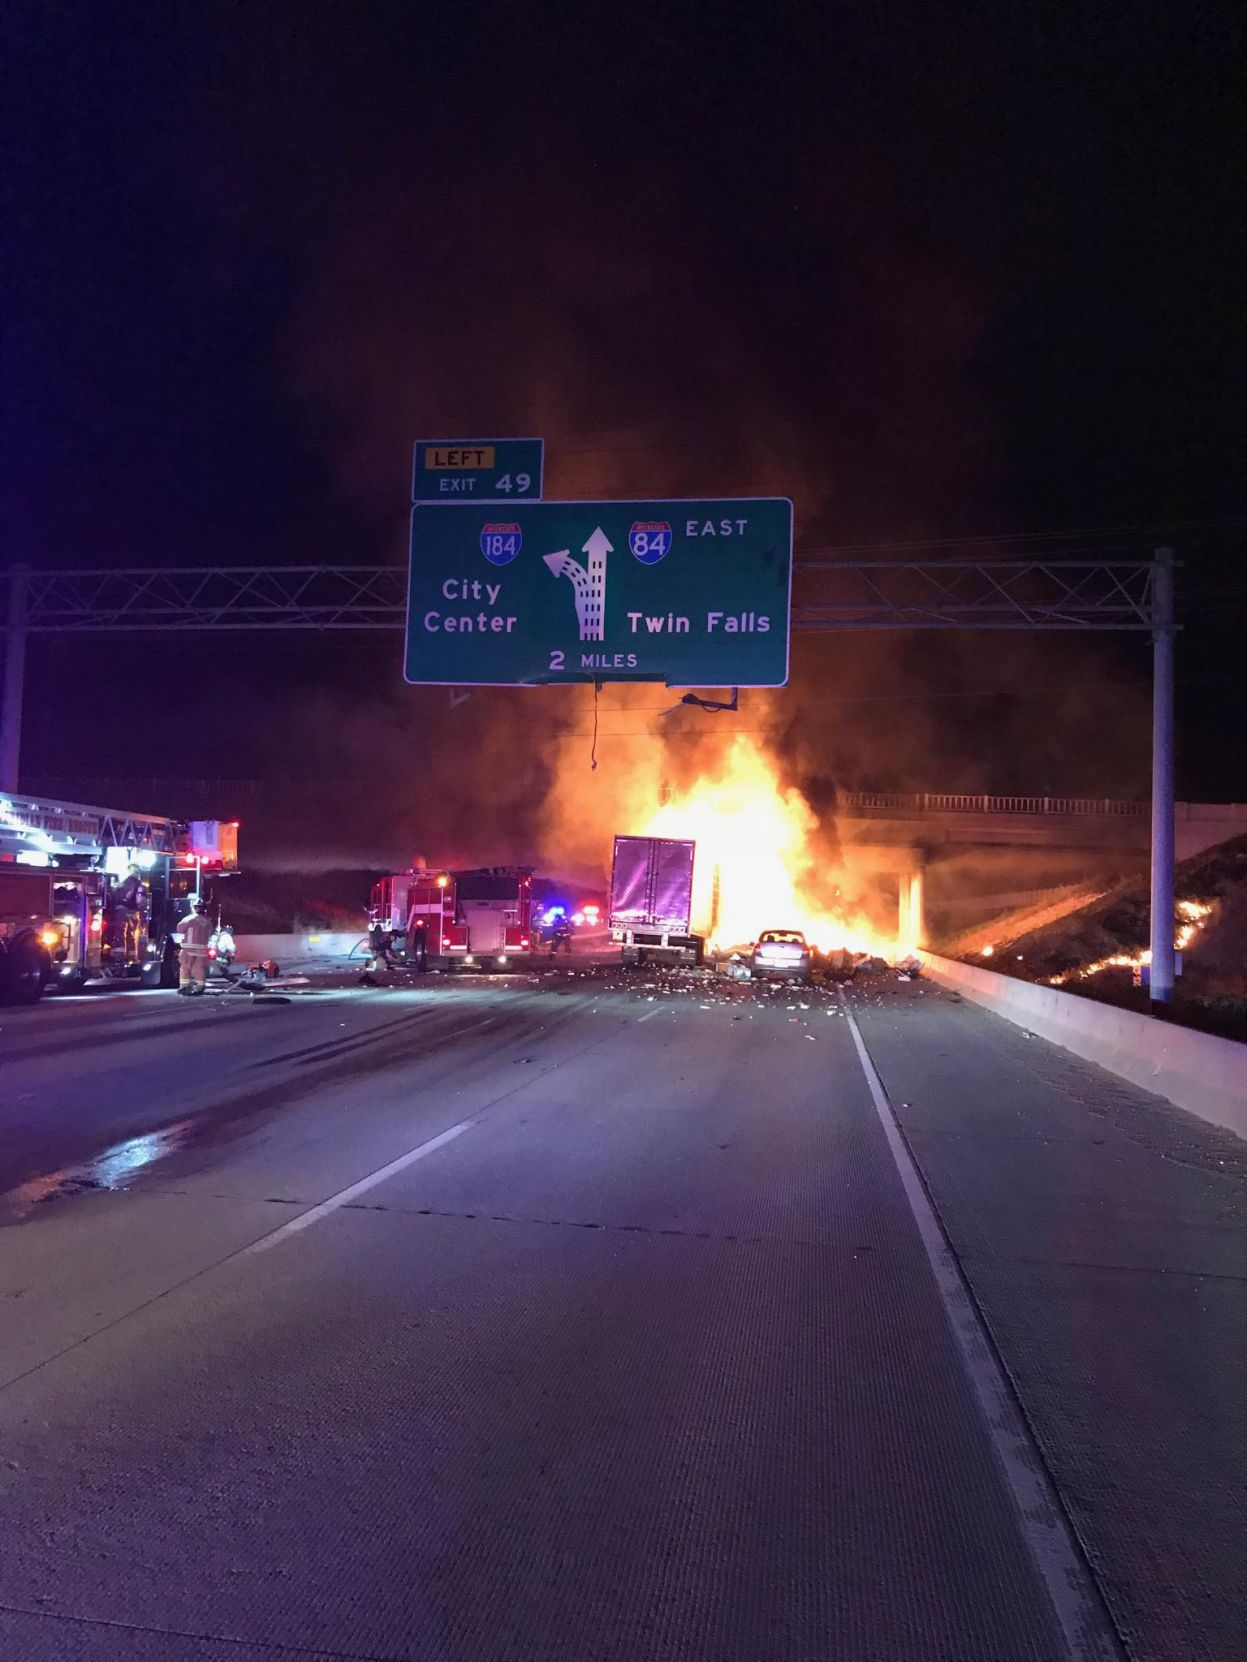 Cloverdale Overpass closed due to damage from fiery I-84 crash | Idaho Press